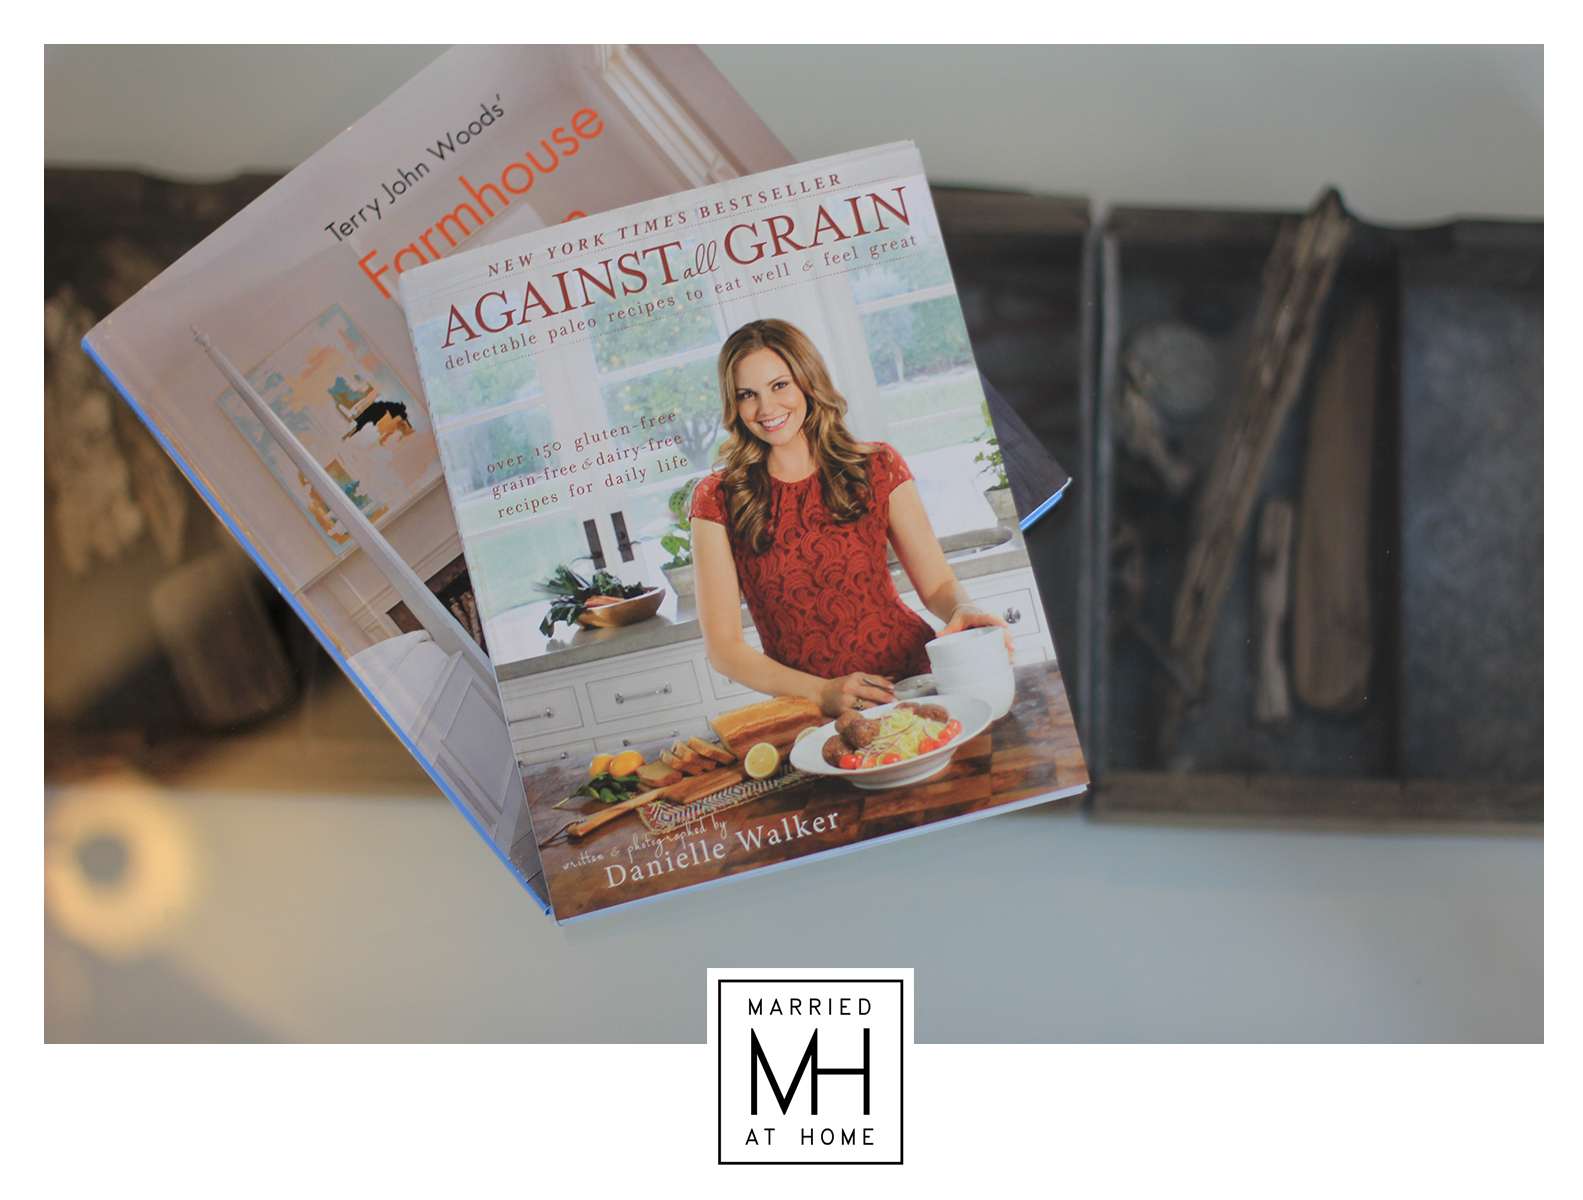 Against All Grain | Married At Home